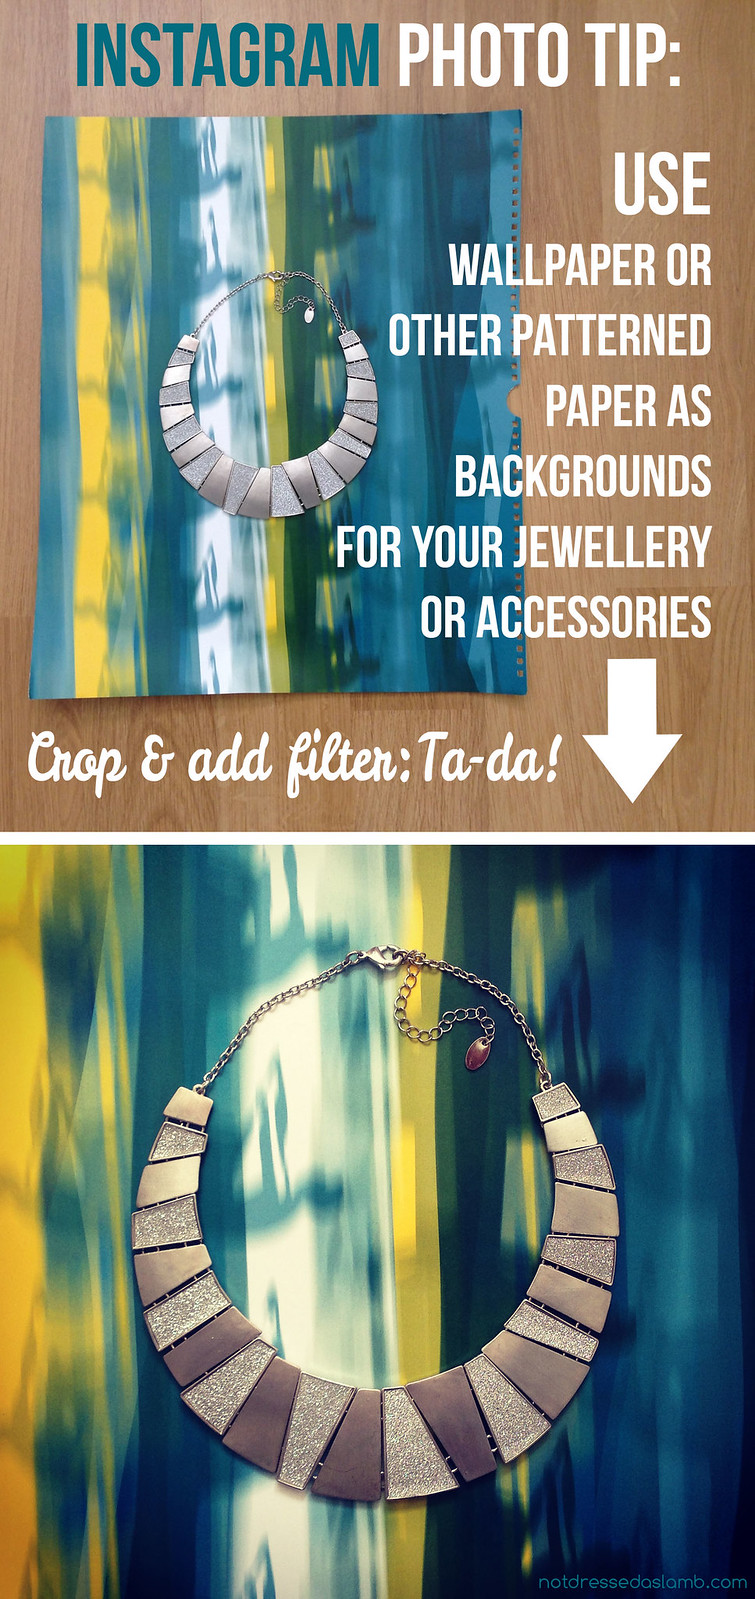 Instagram Photo Tip: Use wallpaper to create backgrounds for your accessories pictures